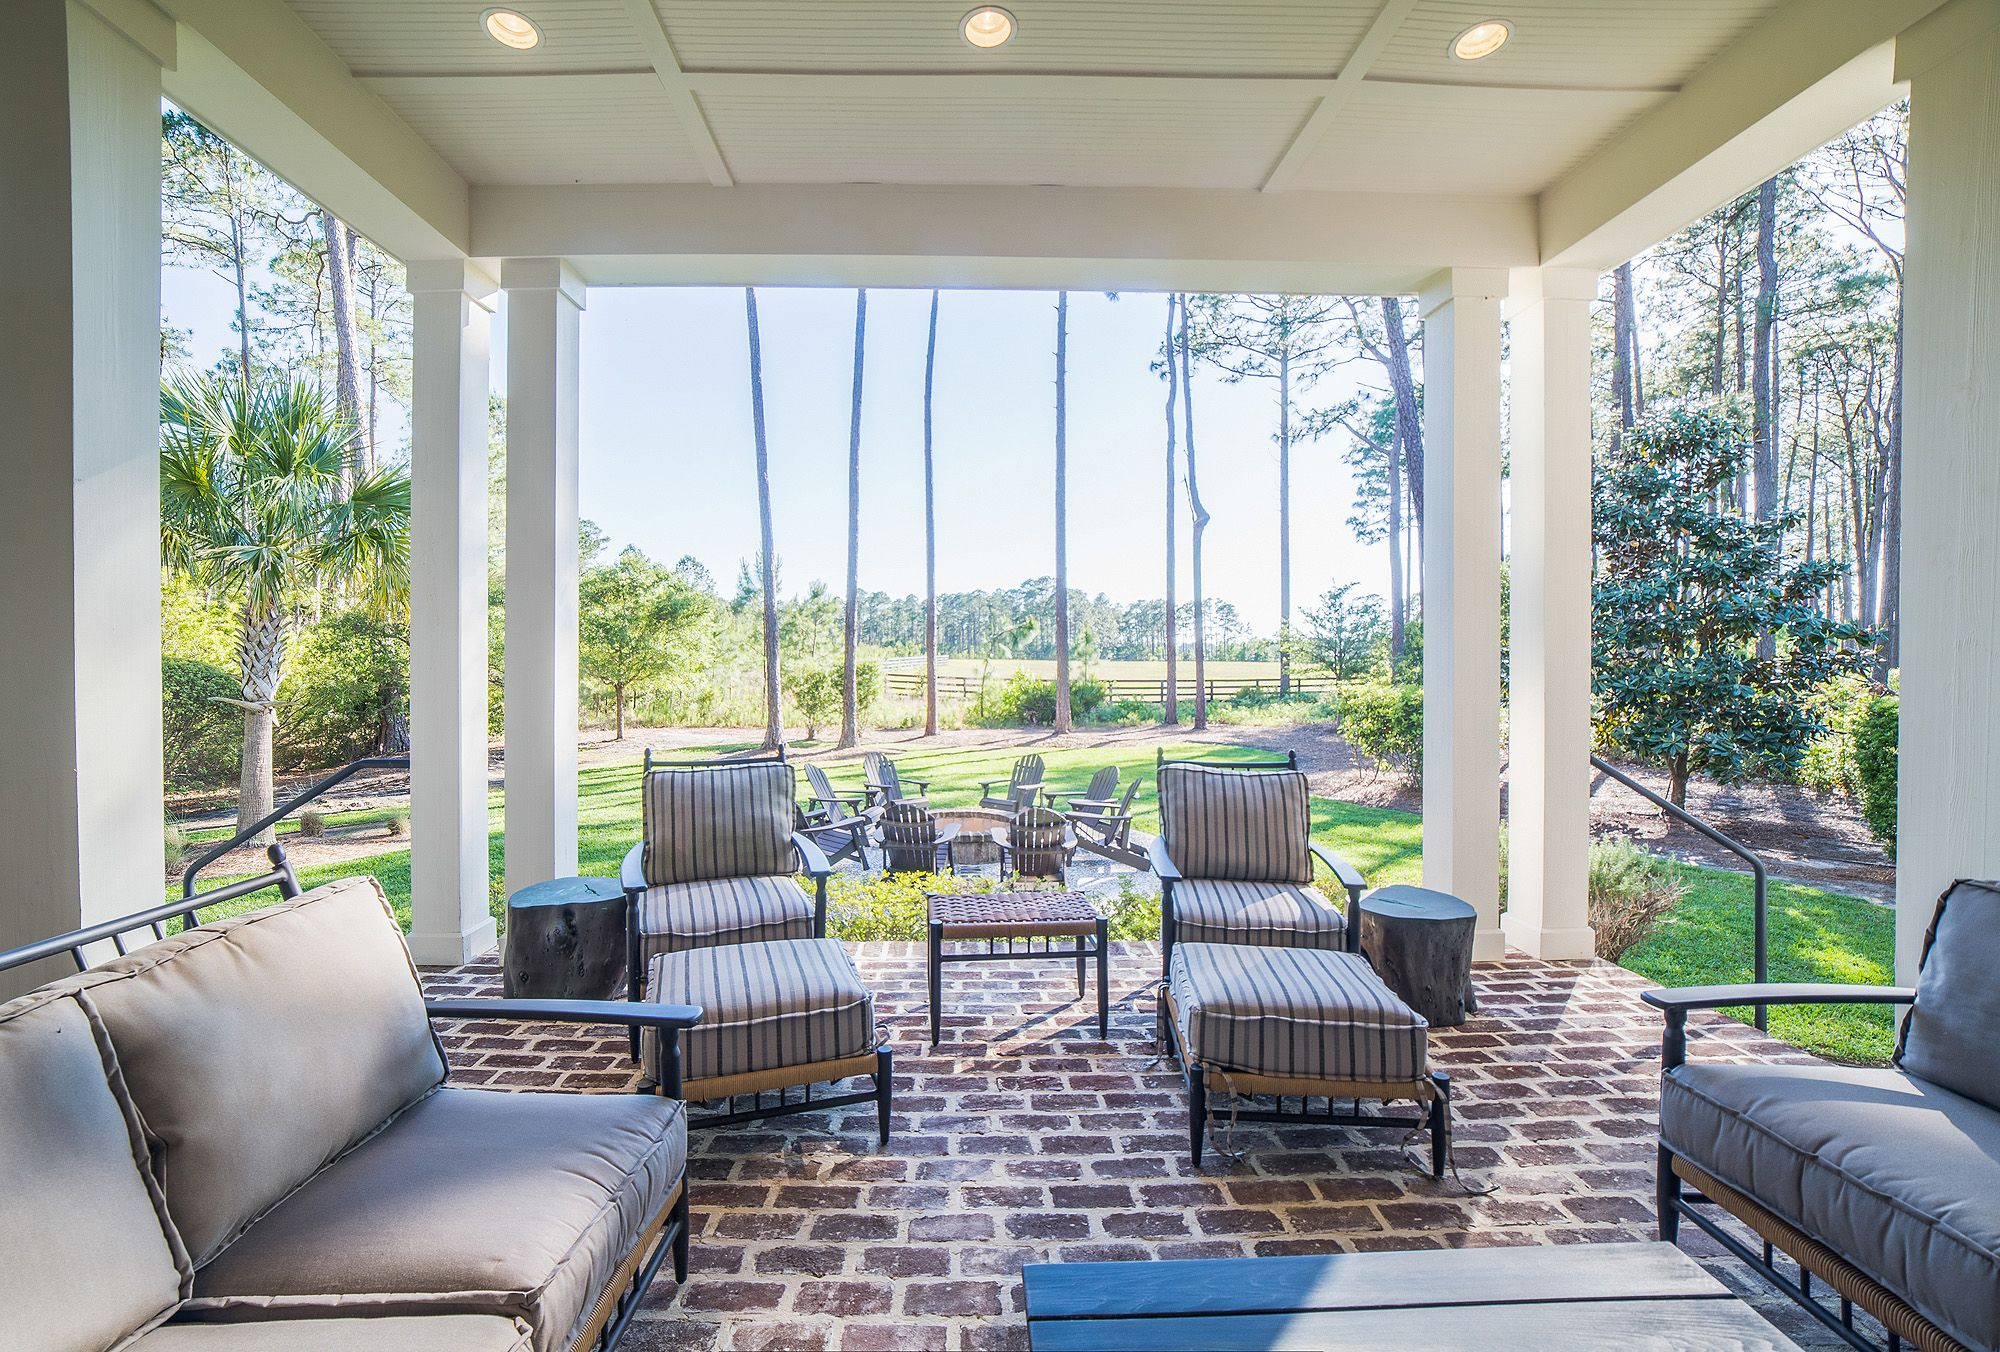 Spacious Backyard | Outdoor Living Ideas | Firepit | Outdoor Seating | Luxury Real Estate Bluffton, South Carolina | Southern Style | Lowcountry Living